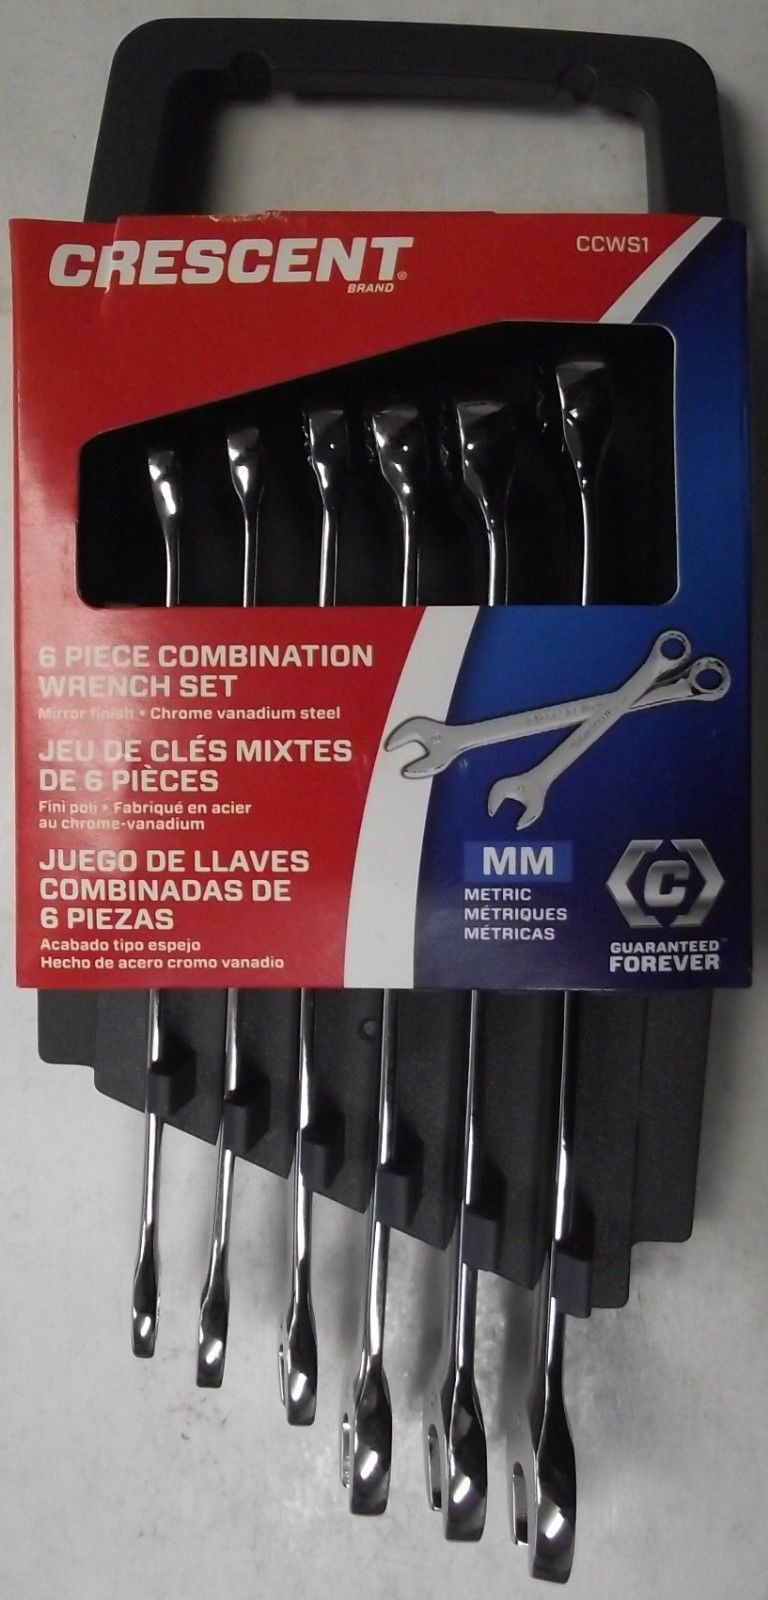 Crescent CCWS1 6pc. Metric Combination Wrench Set 12pt.